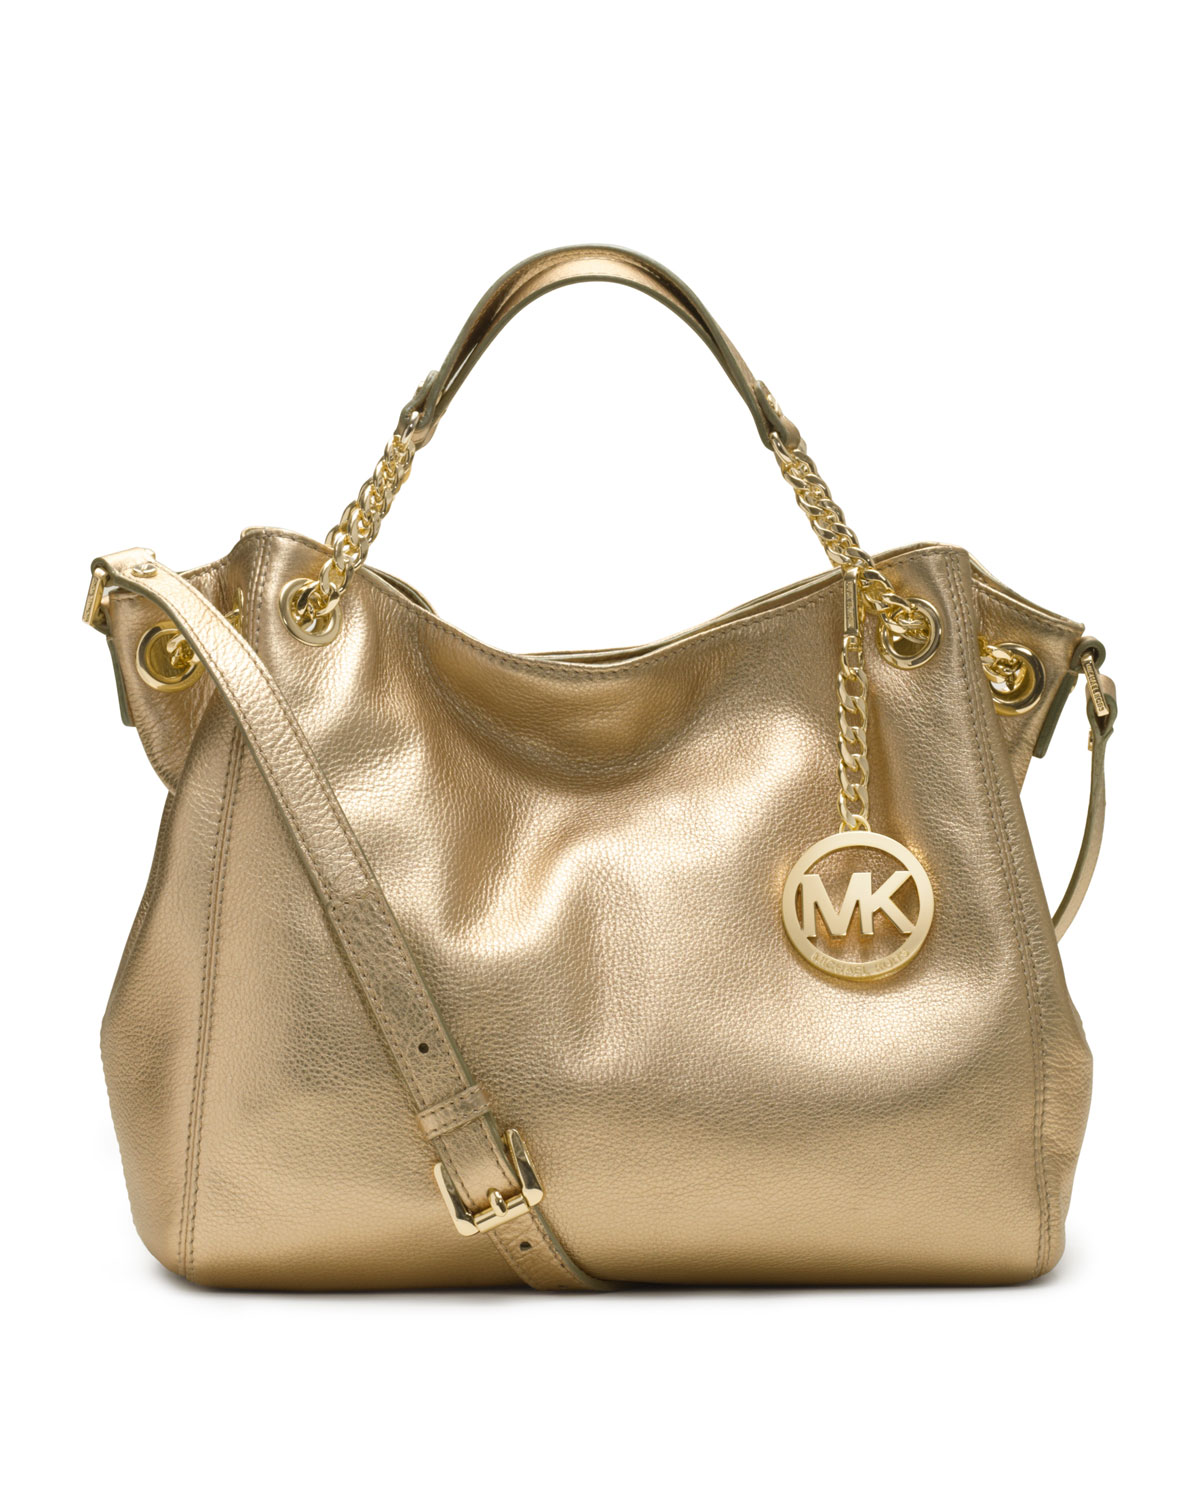 1c787b7708e9 Lyst - Michael Kors Medium Jet Set Gathered Shoulder Tote in Metallic